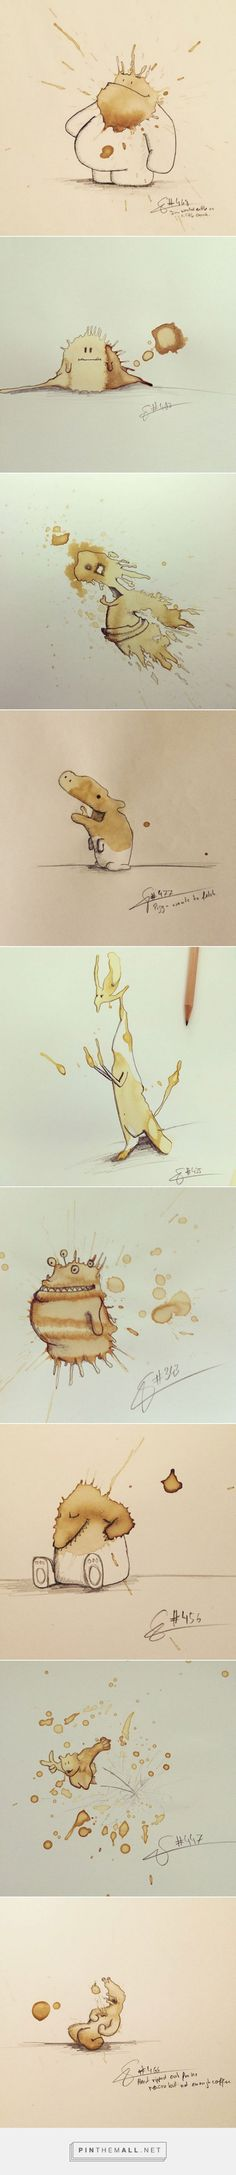 Funny Monster Drawings Made From Coffee Stains – Fubiz Amazing Artwork, Cool Artwork, Illustration Sketches, Graphic Illustration, Funny Monsters, 8th Grade Art, Monster Drawing, Coffee Painting, Art Challenge